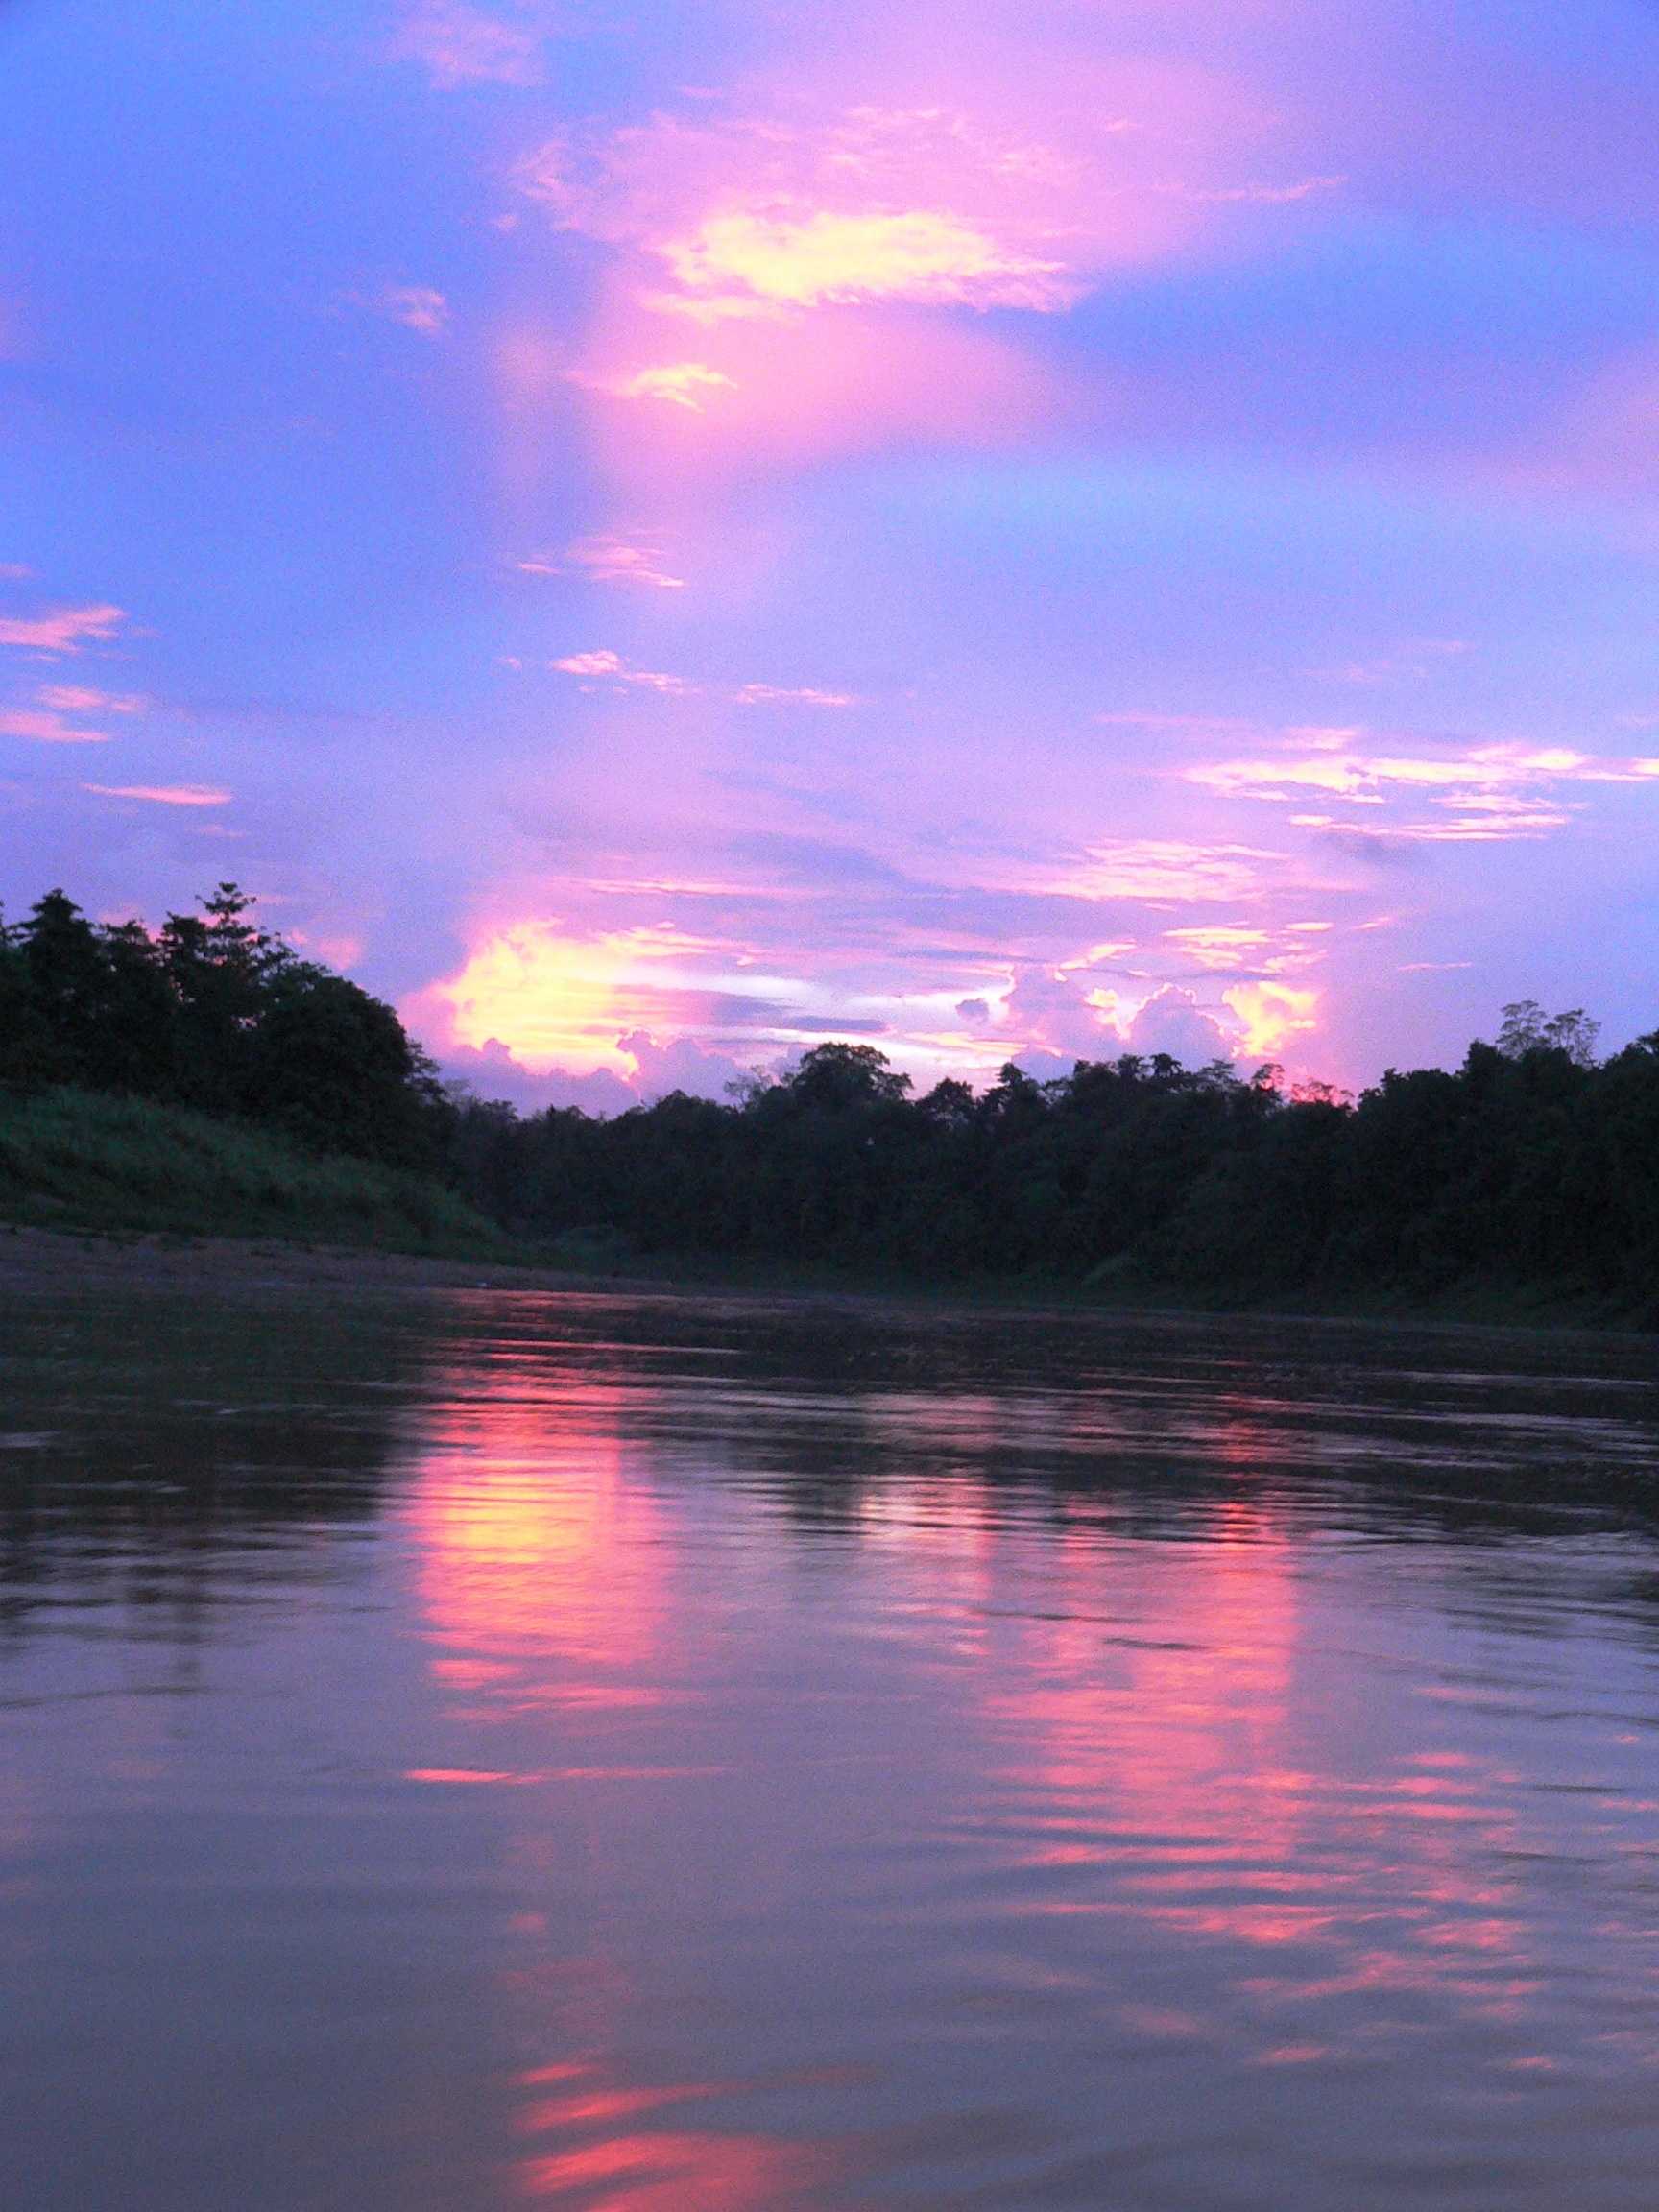 Sunrise over the Kinabatangan River Basin, Borneo, Malaysia